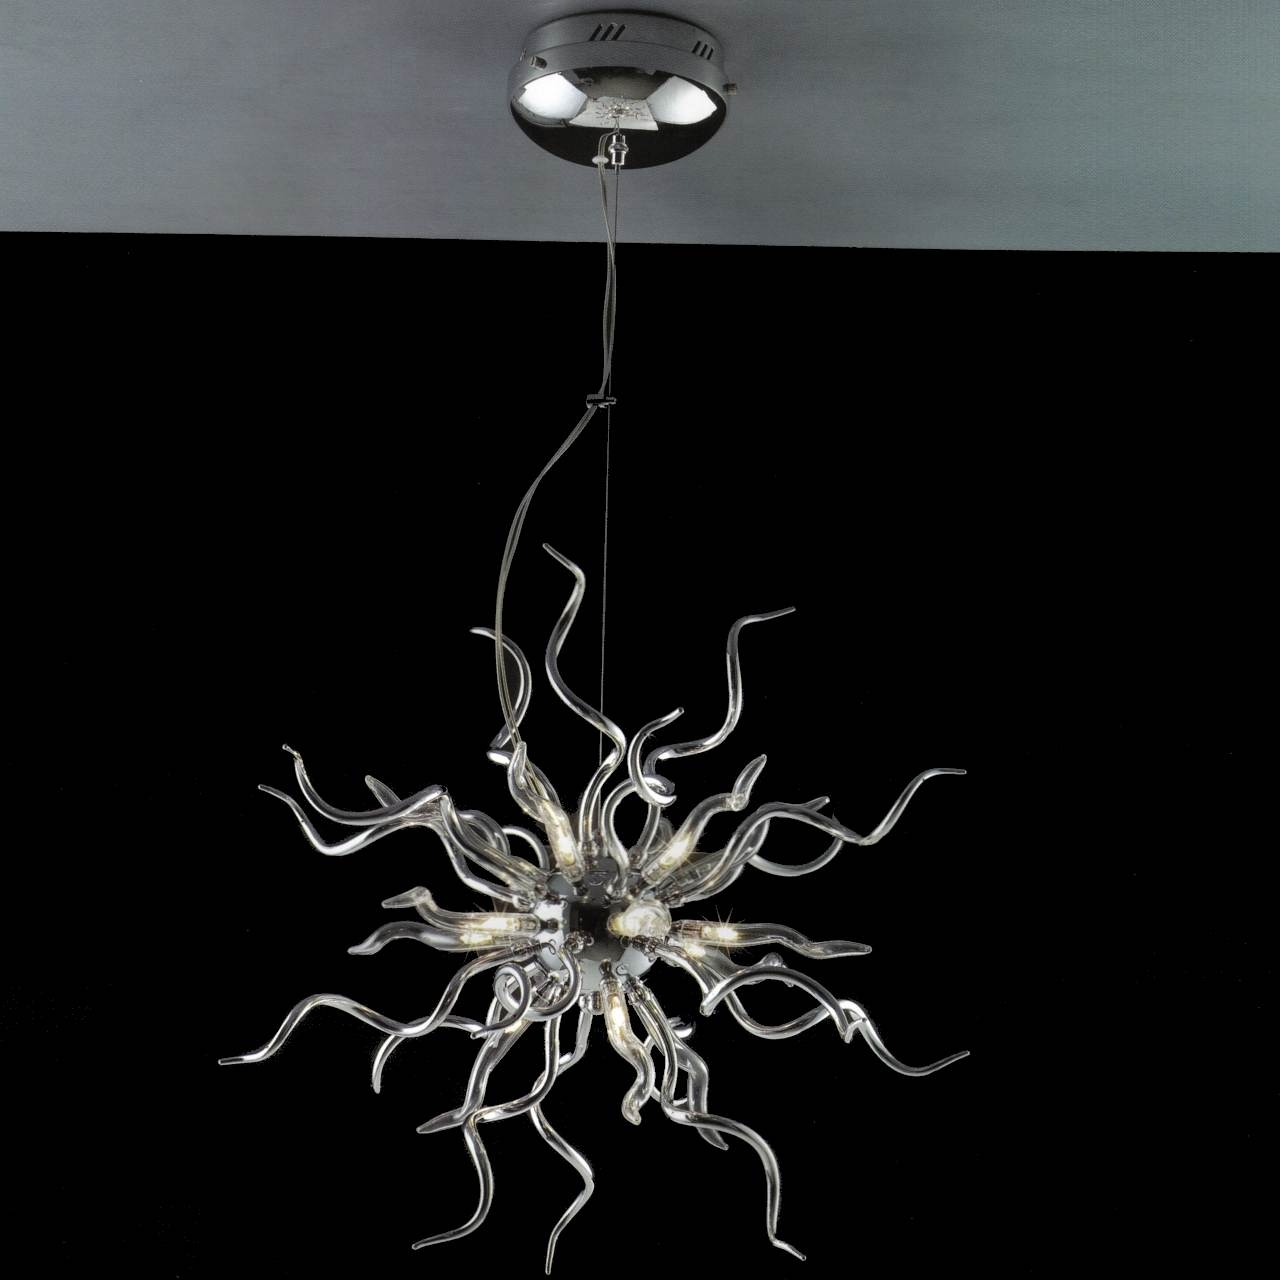 Brizzo Lighting Stores 23 Medusa Modern Round Chandelier Throughout Chrome And Glass Chandelier (View 11 of 15)